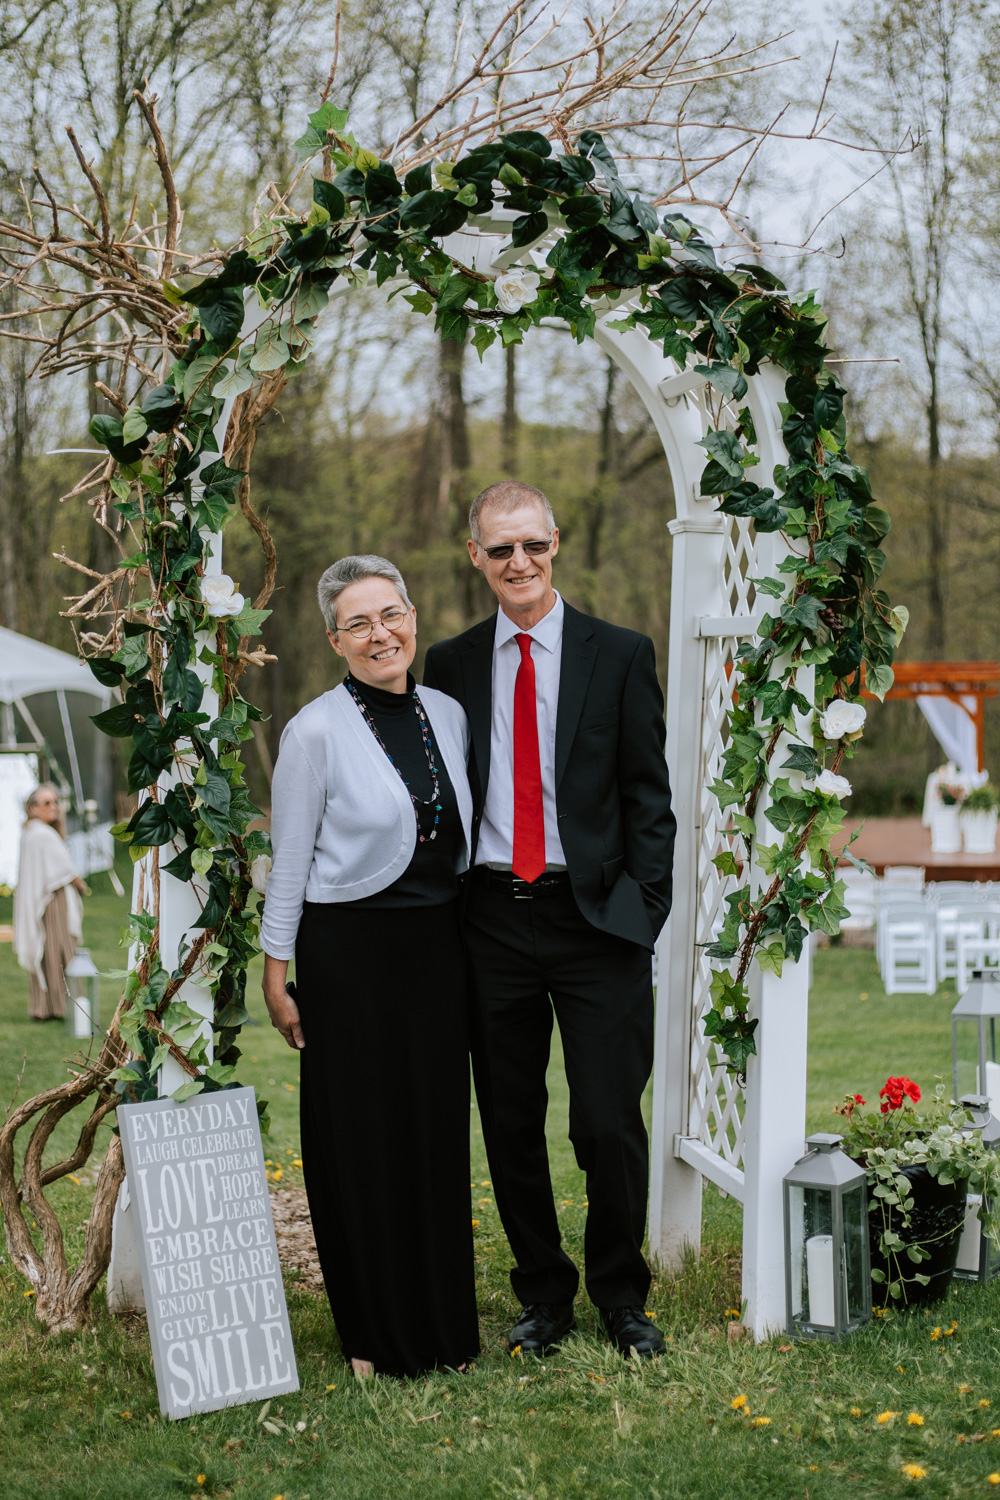 Shutter Up Studios   Wedding photographer in Pittsburgh, Pennsylvania   Guest photo booth at floral arch